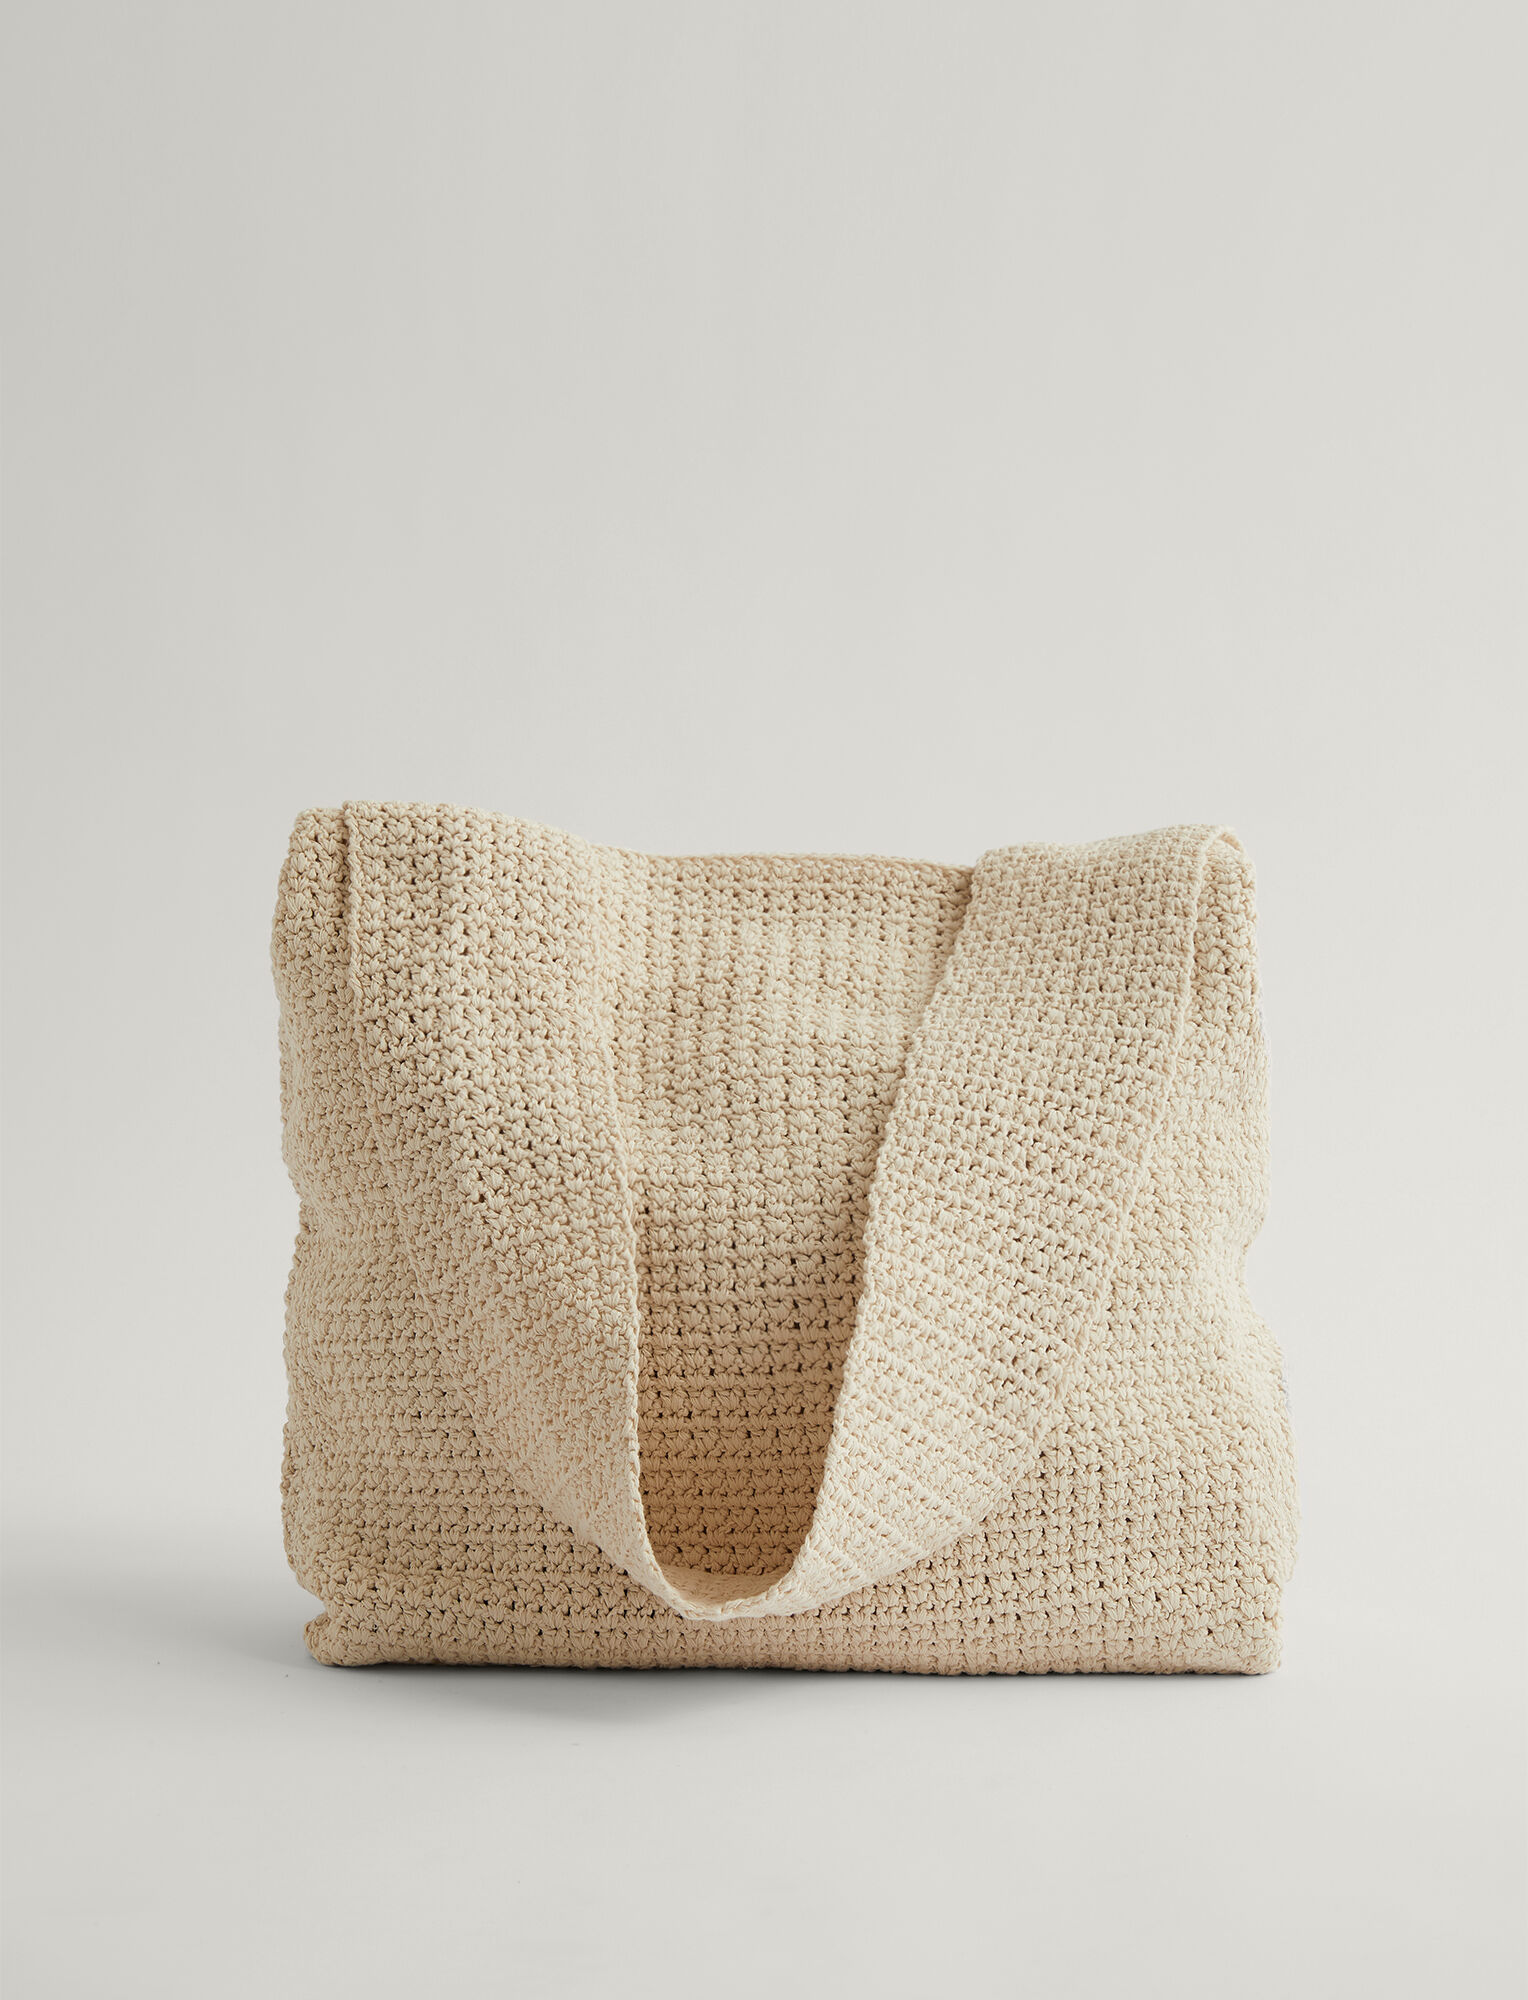 Joseph, Crispy Cotton Hand Crochet Bag, in PORCELAIN